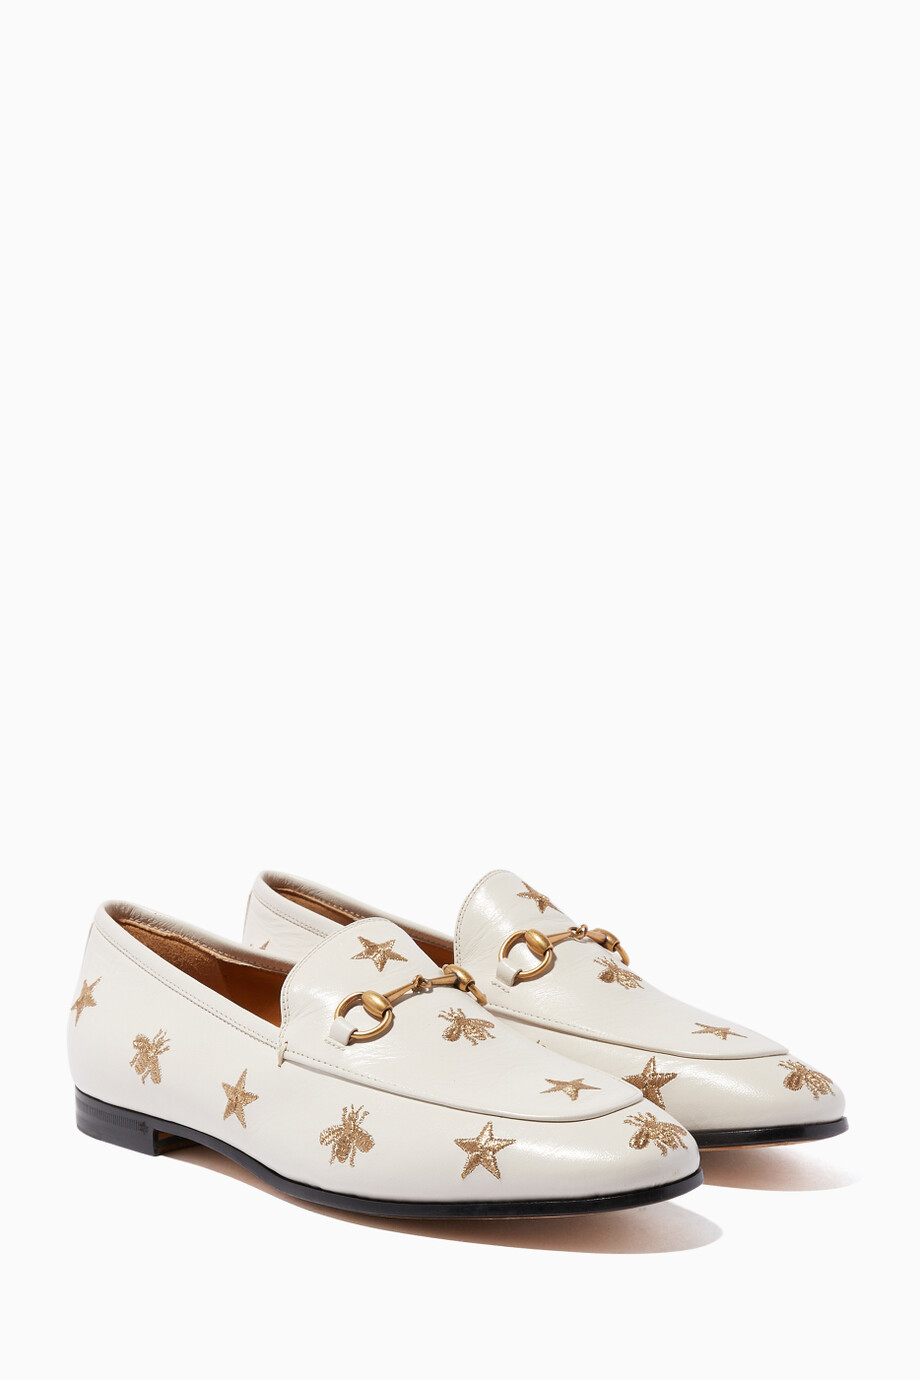 45ace9650 Shop Gucci Neutral Gucci Jordaan Embroidered Leather Loafers for ...